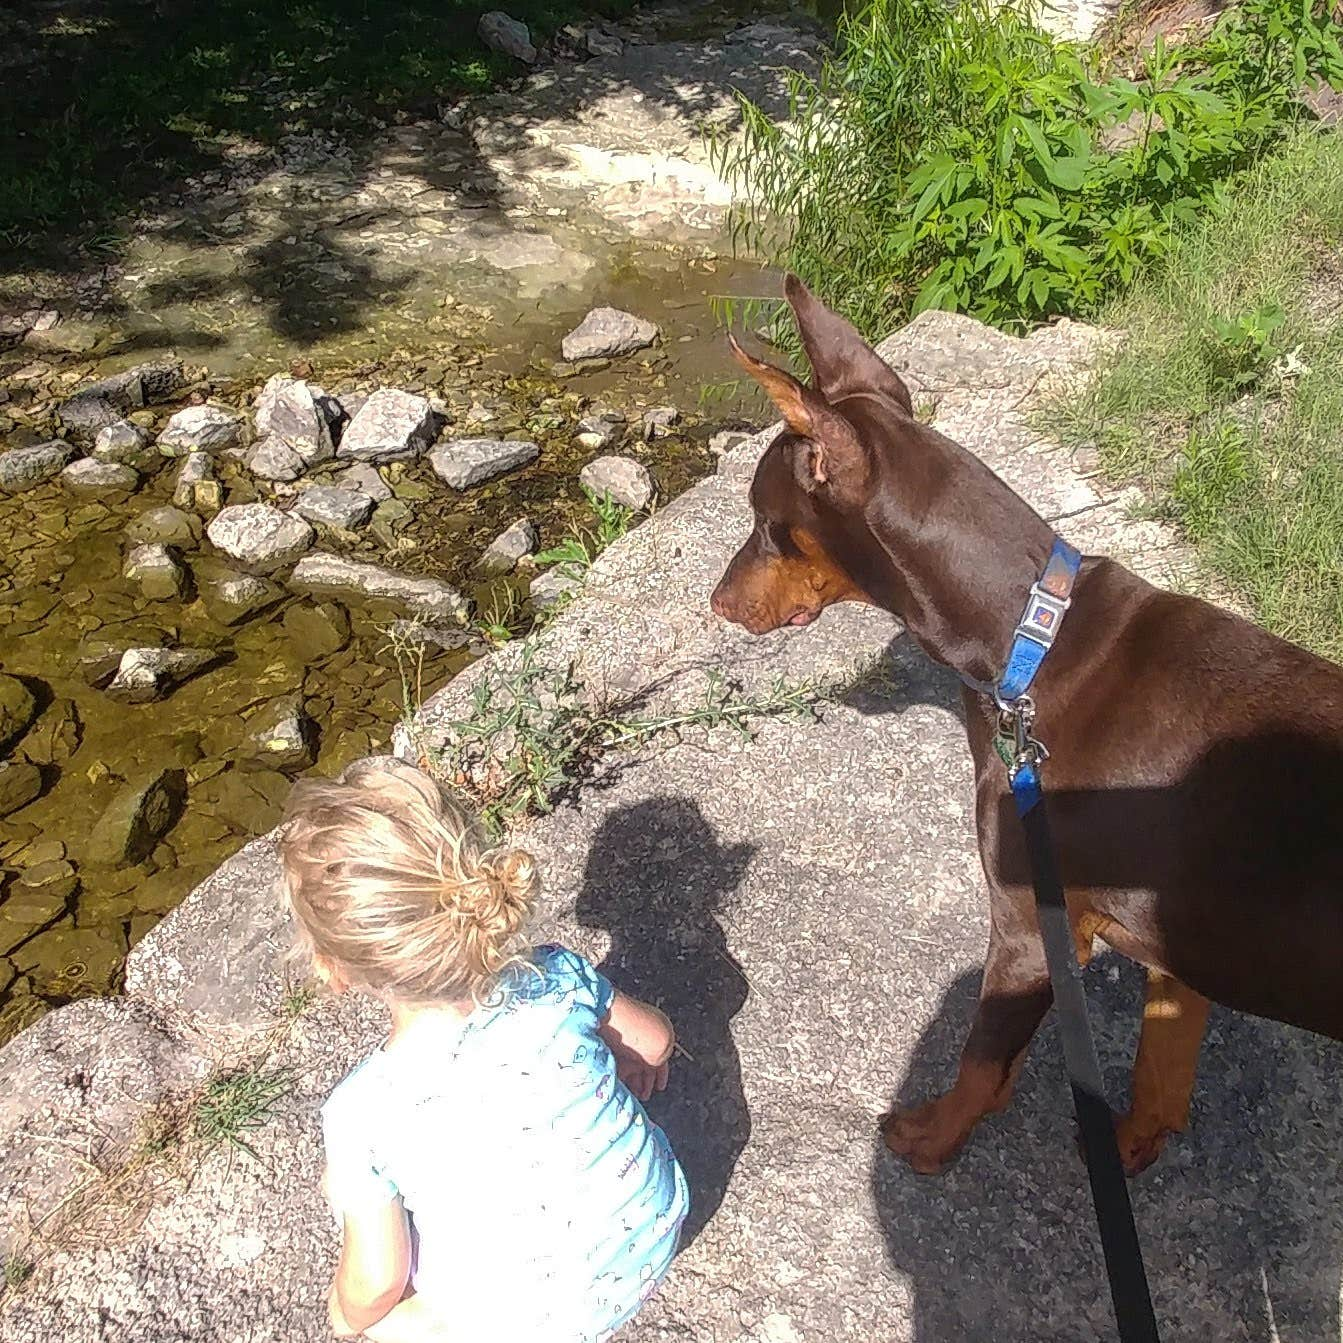 A child and well-trained dog look over the water together.